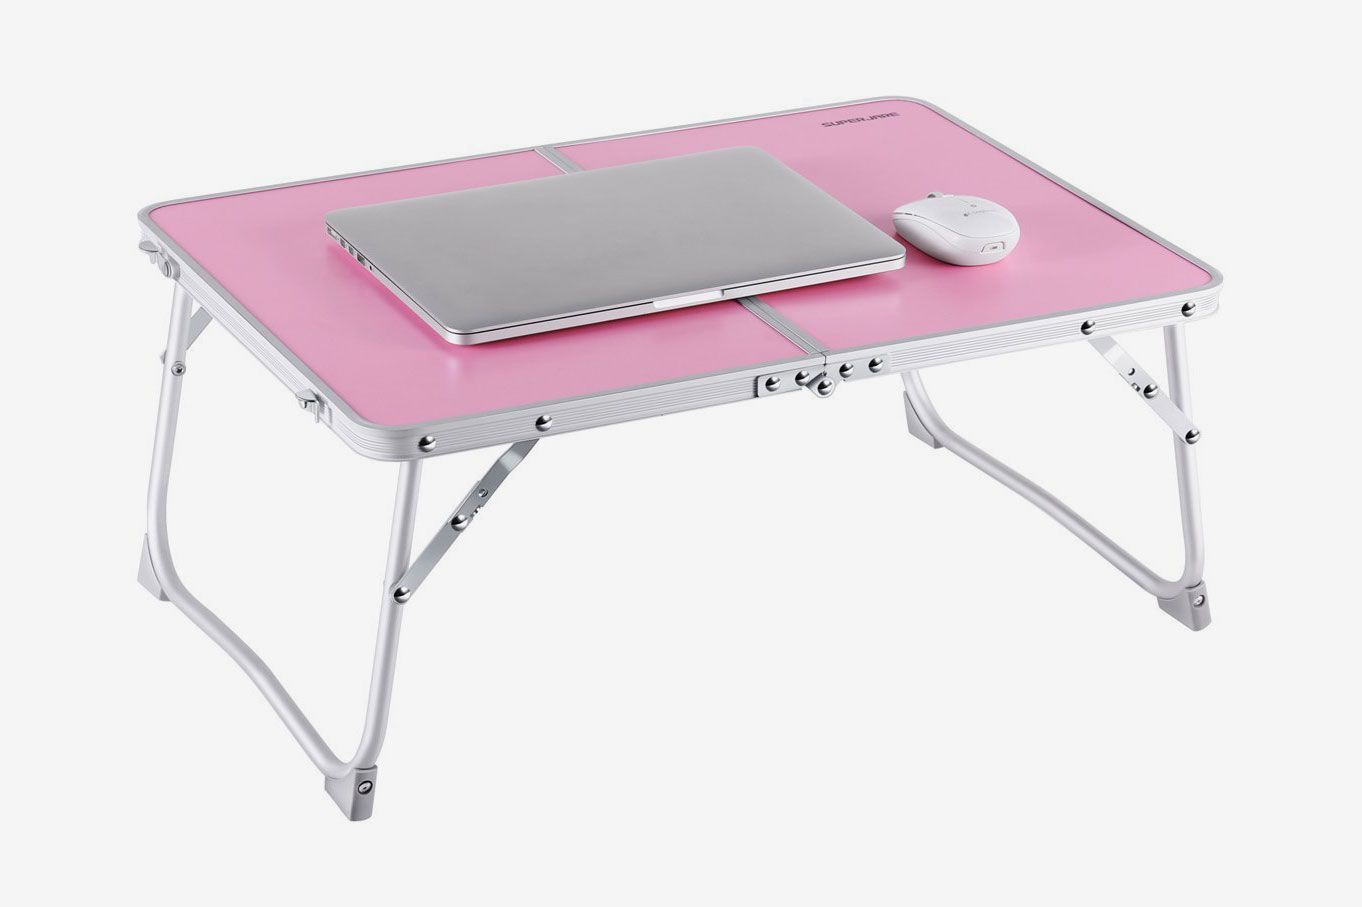 Superjare Laptop Table for Bed